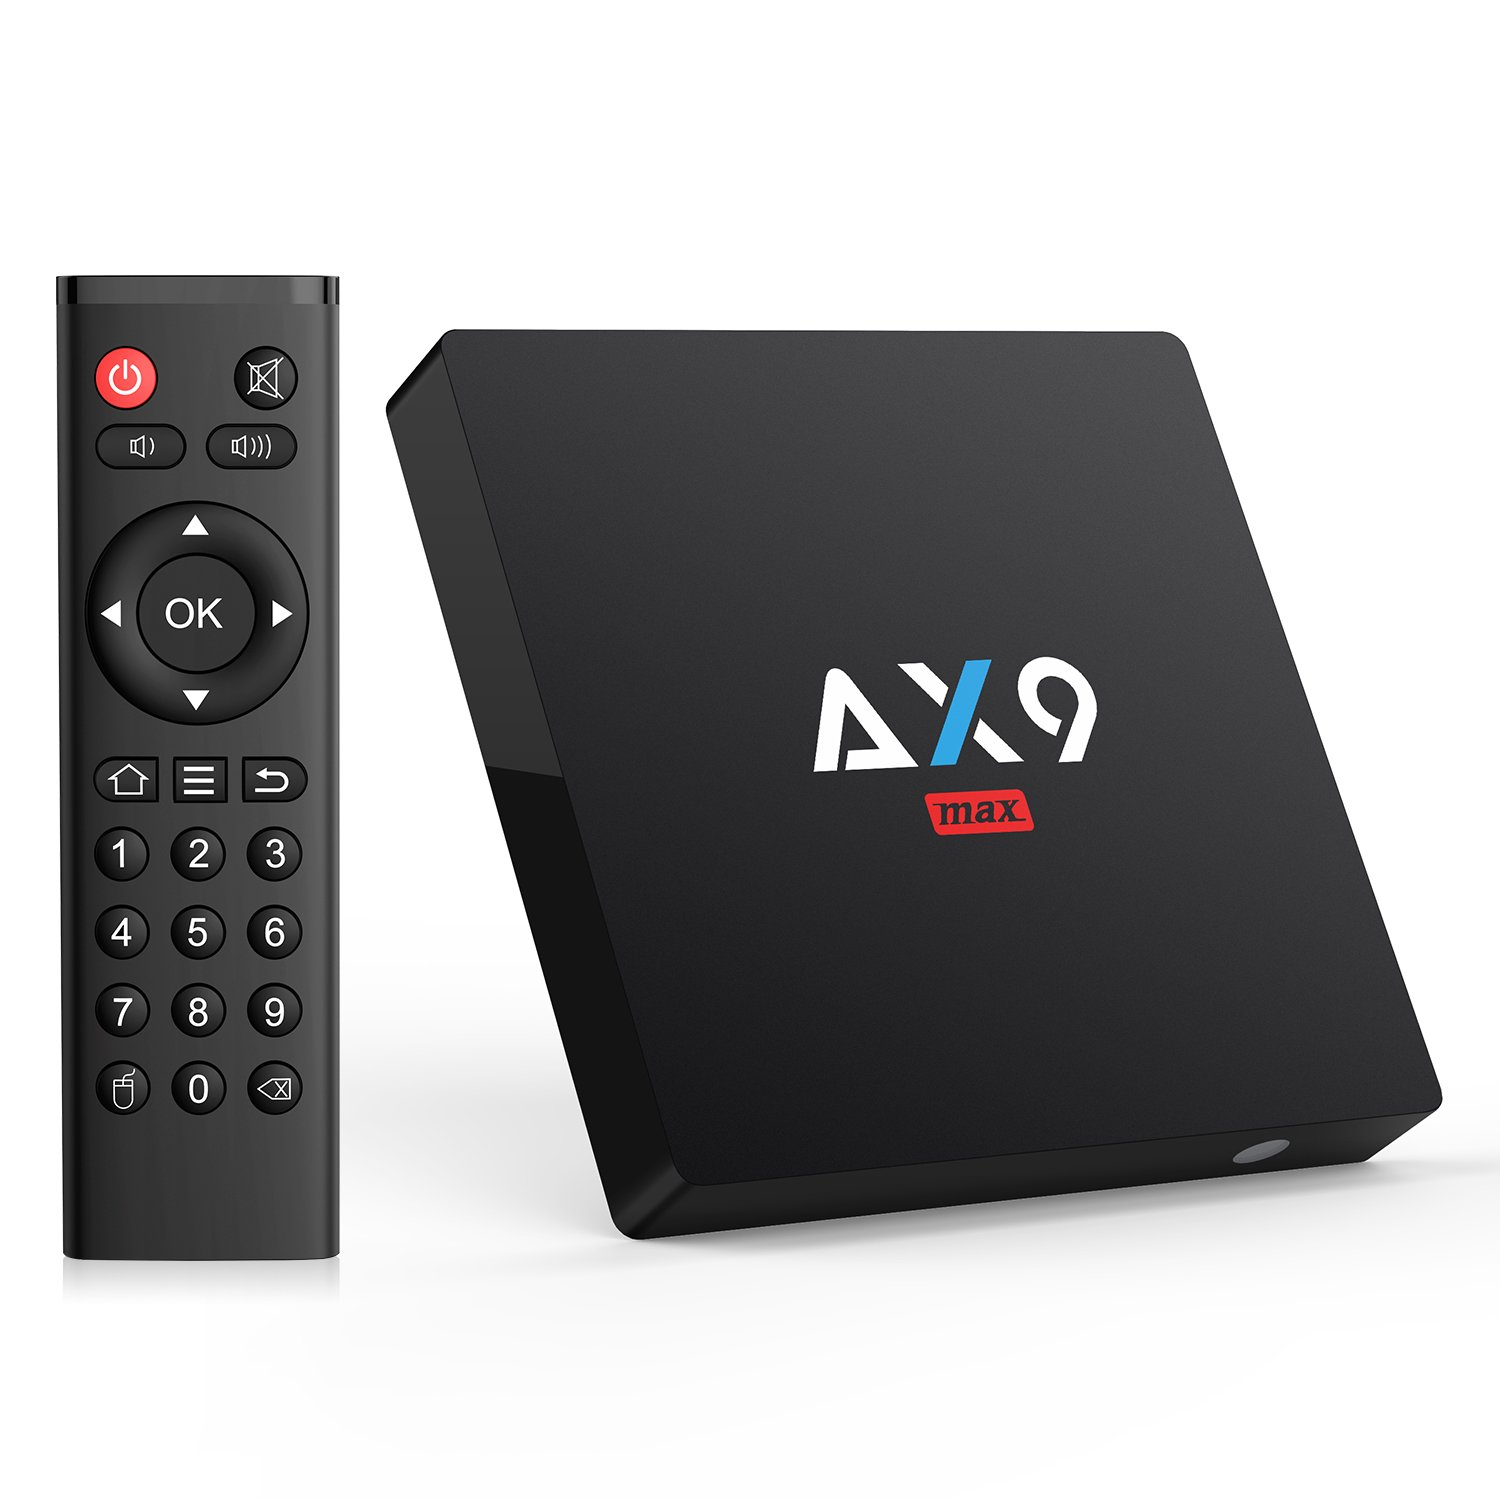 Bqeel AX9 Max Android 7.1 TV Box Quad Core A53 2GB/16GB EMMC con Procesador 64 Bits 2.4G WIFI/H.265 DLNA/4K Smart TV Box: Amazon.es: Electrónica